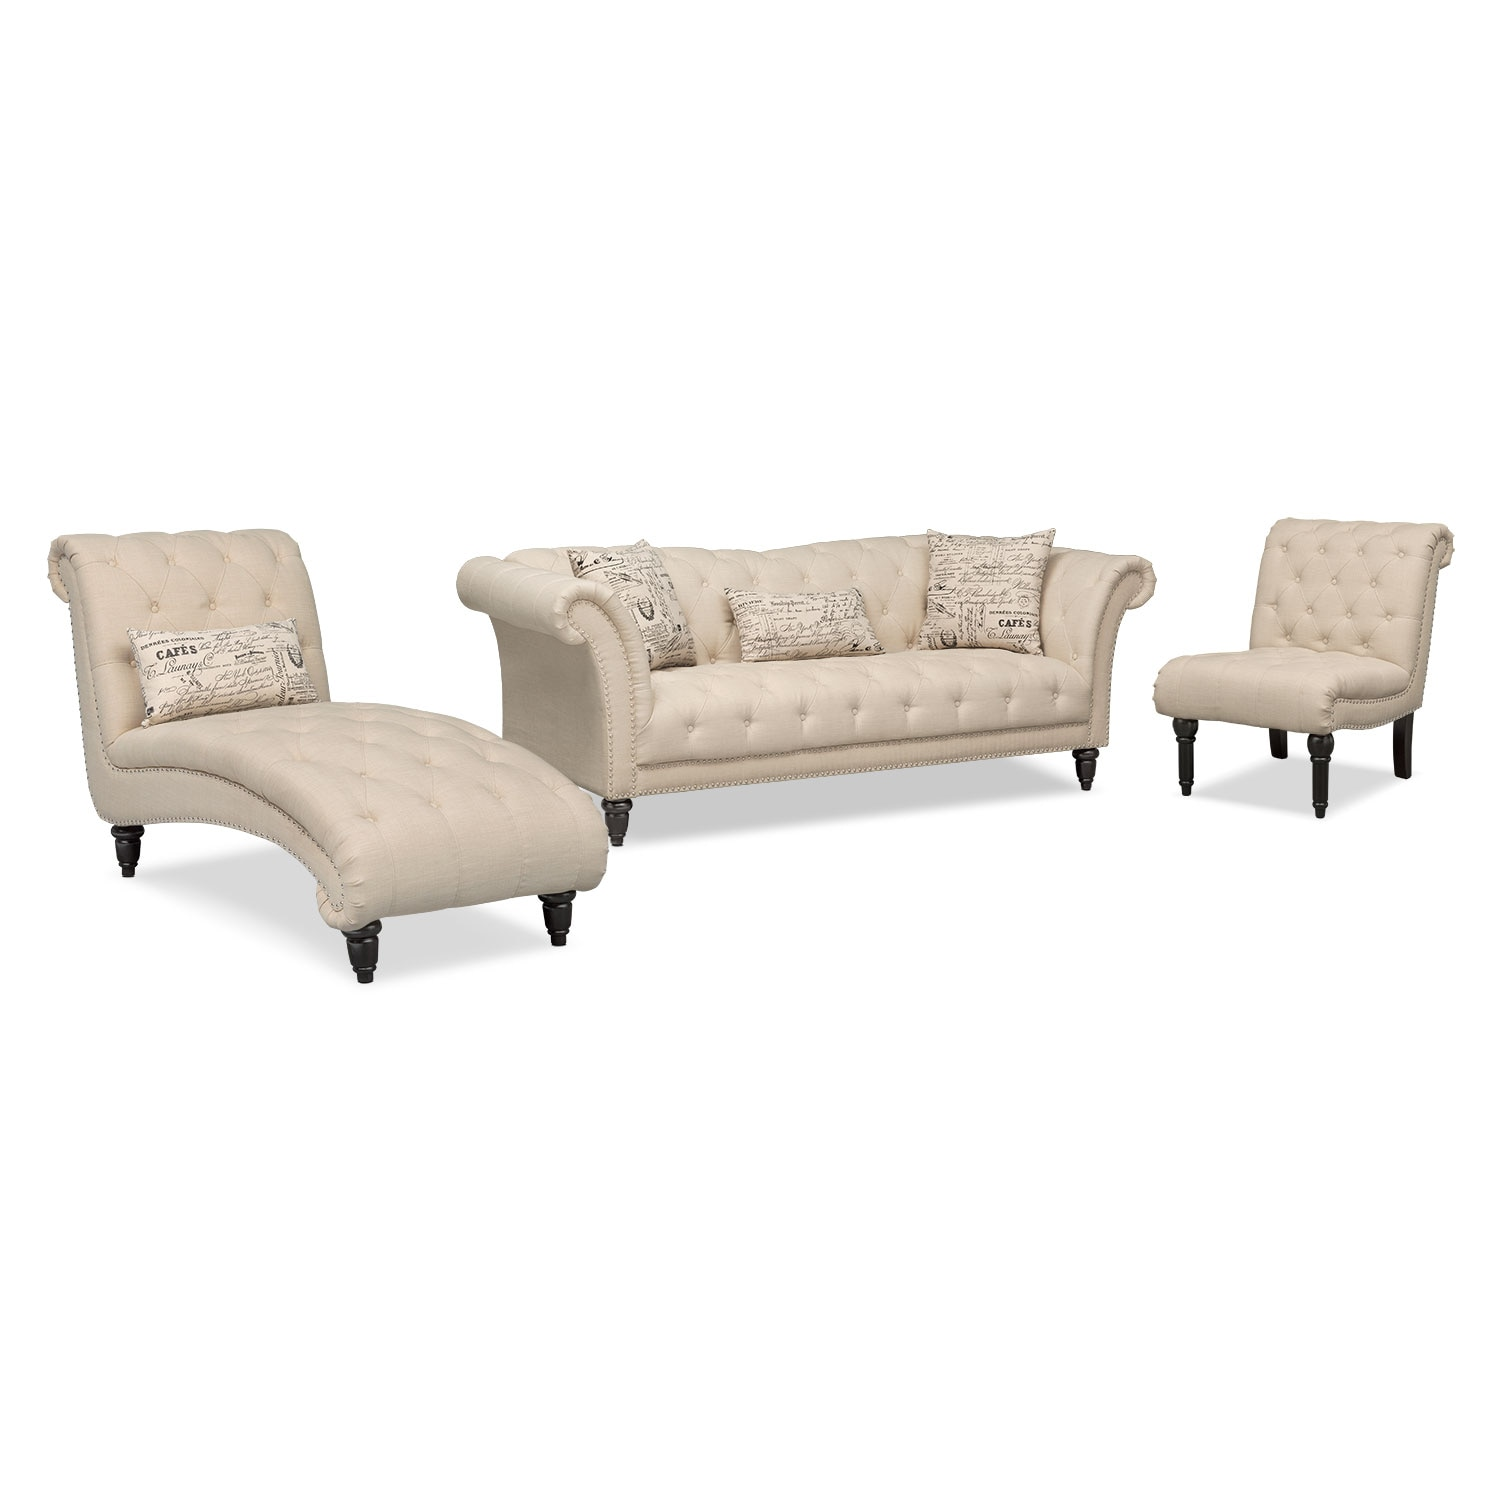 value city furniture marco chaise sofa poundex bobkona leo reversible sectional marisol and armless chair beige